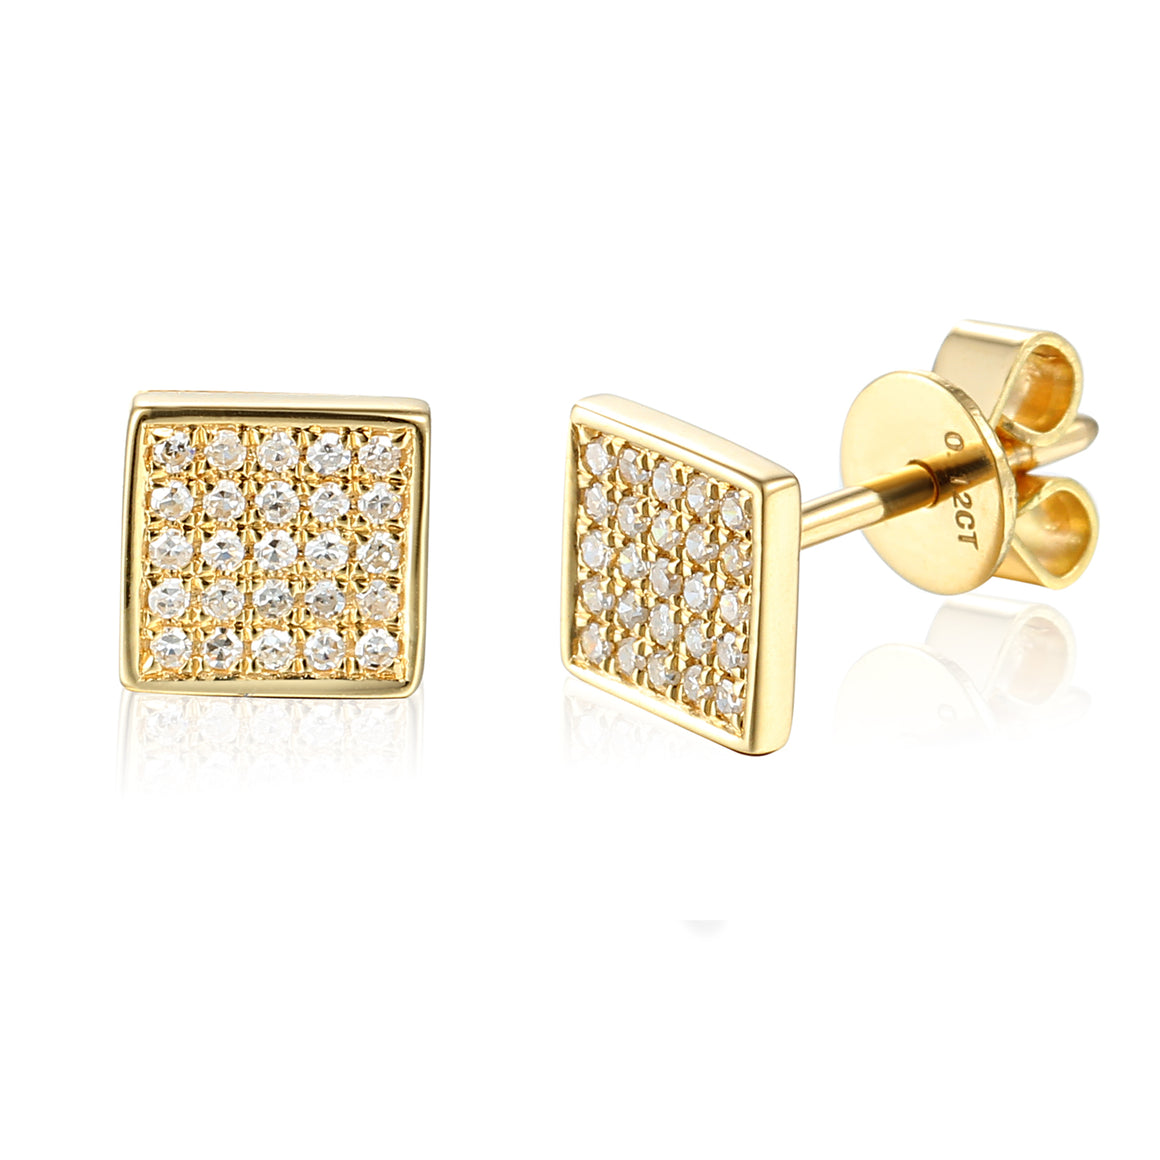 18ct yellow Gold Pave Diamond Set Square Stud Geometric Earrings